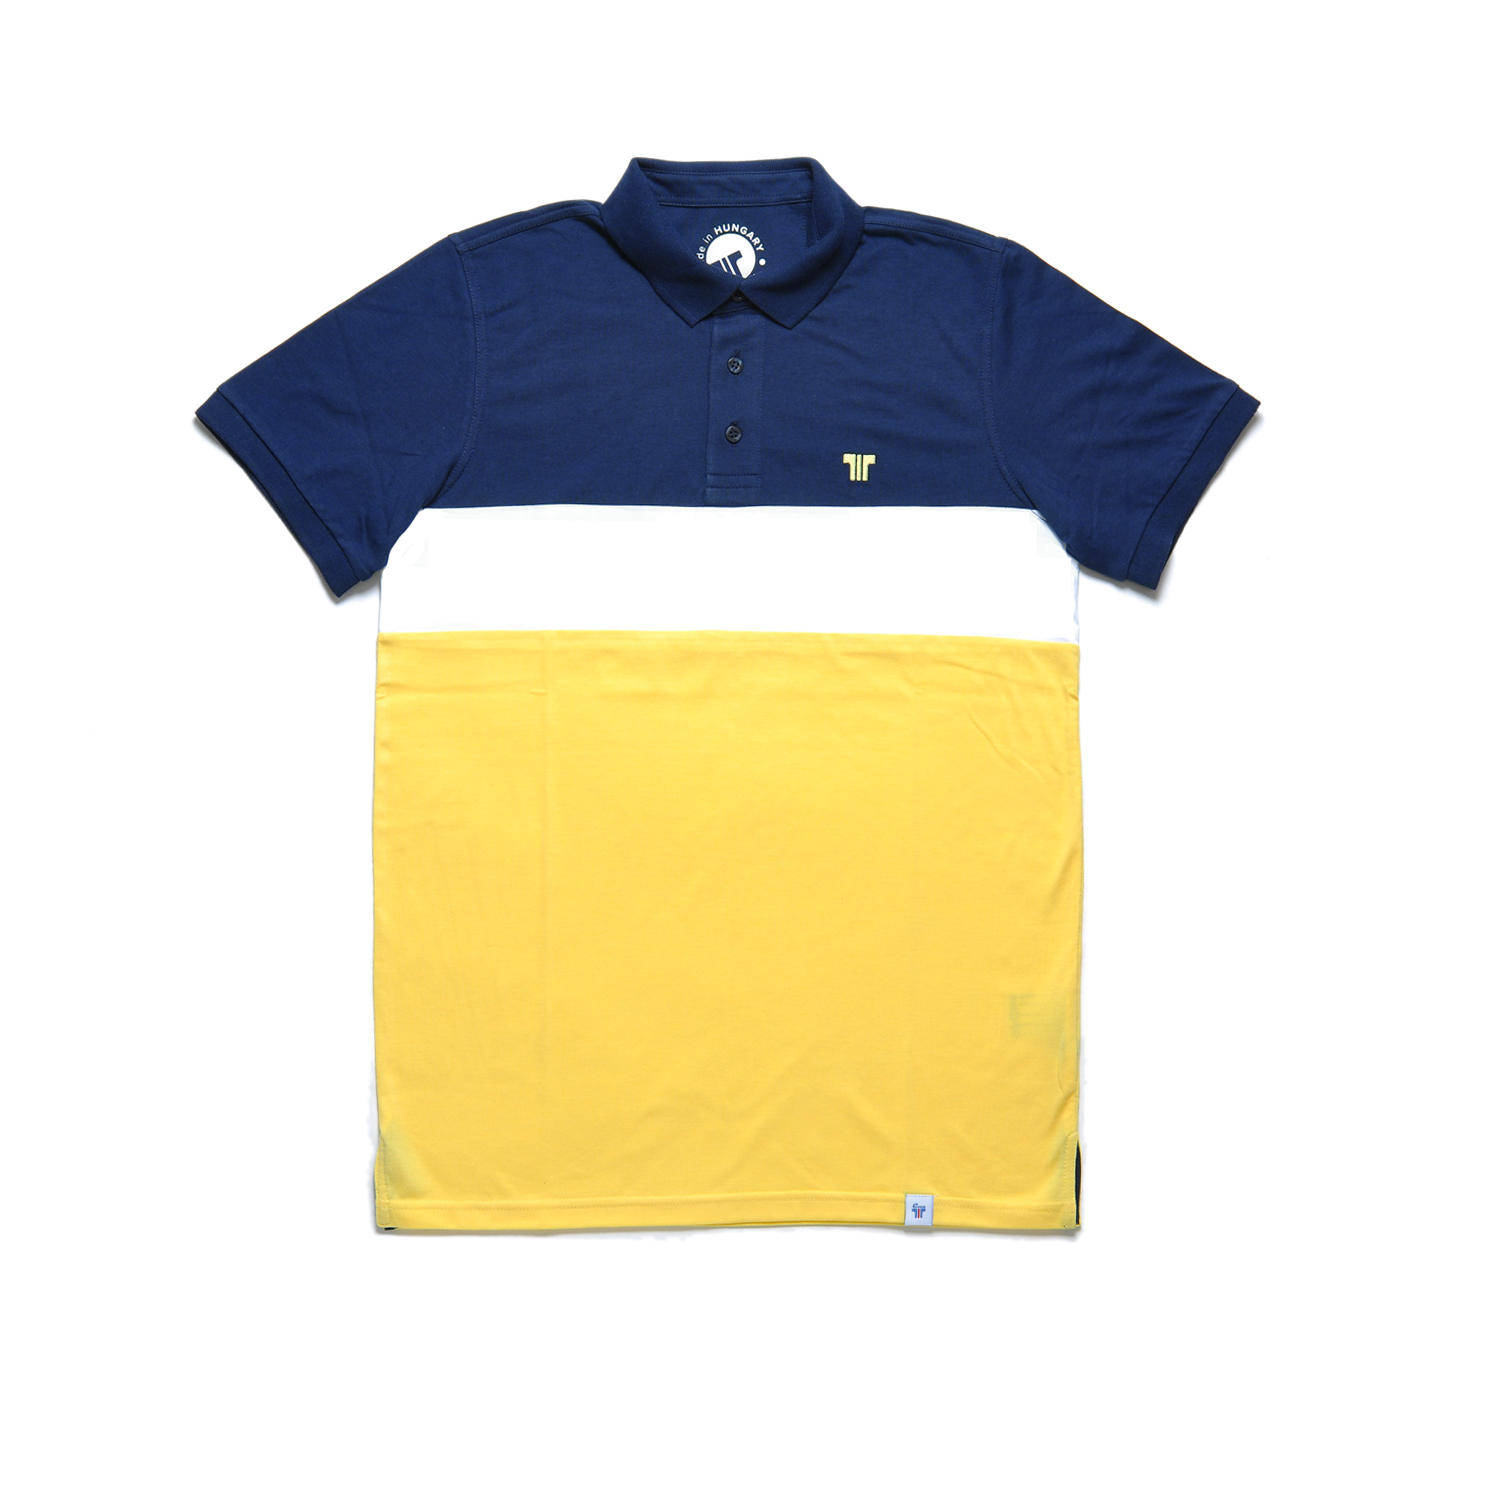 Tisza shoes - Tennis shirt - Canary